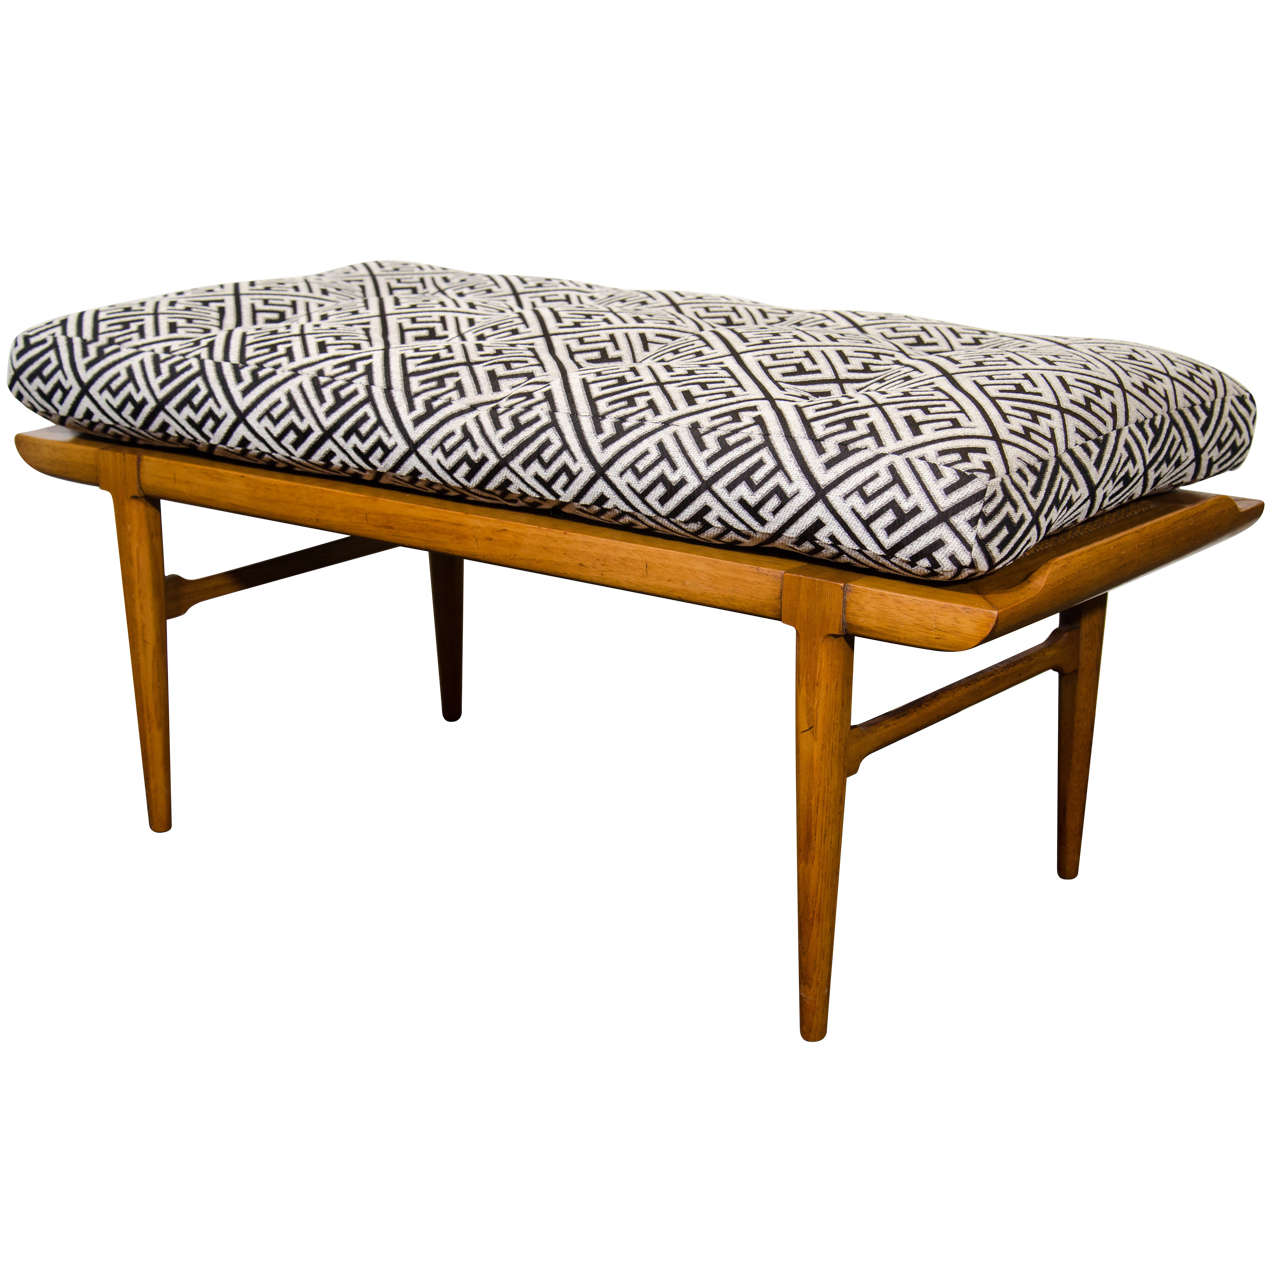 Midcentury Asian Inspired Bench By Tomlinson At 1stdibs